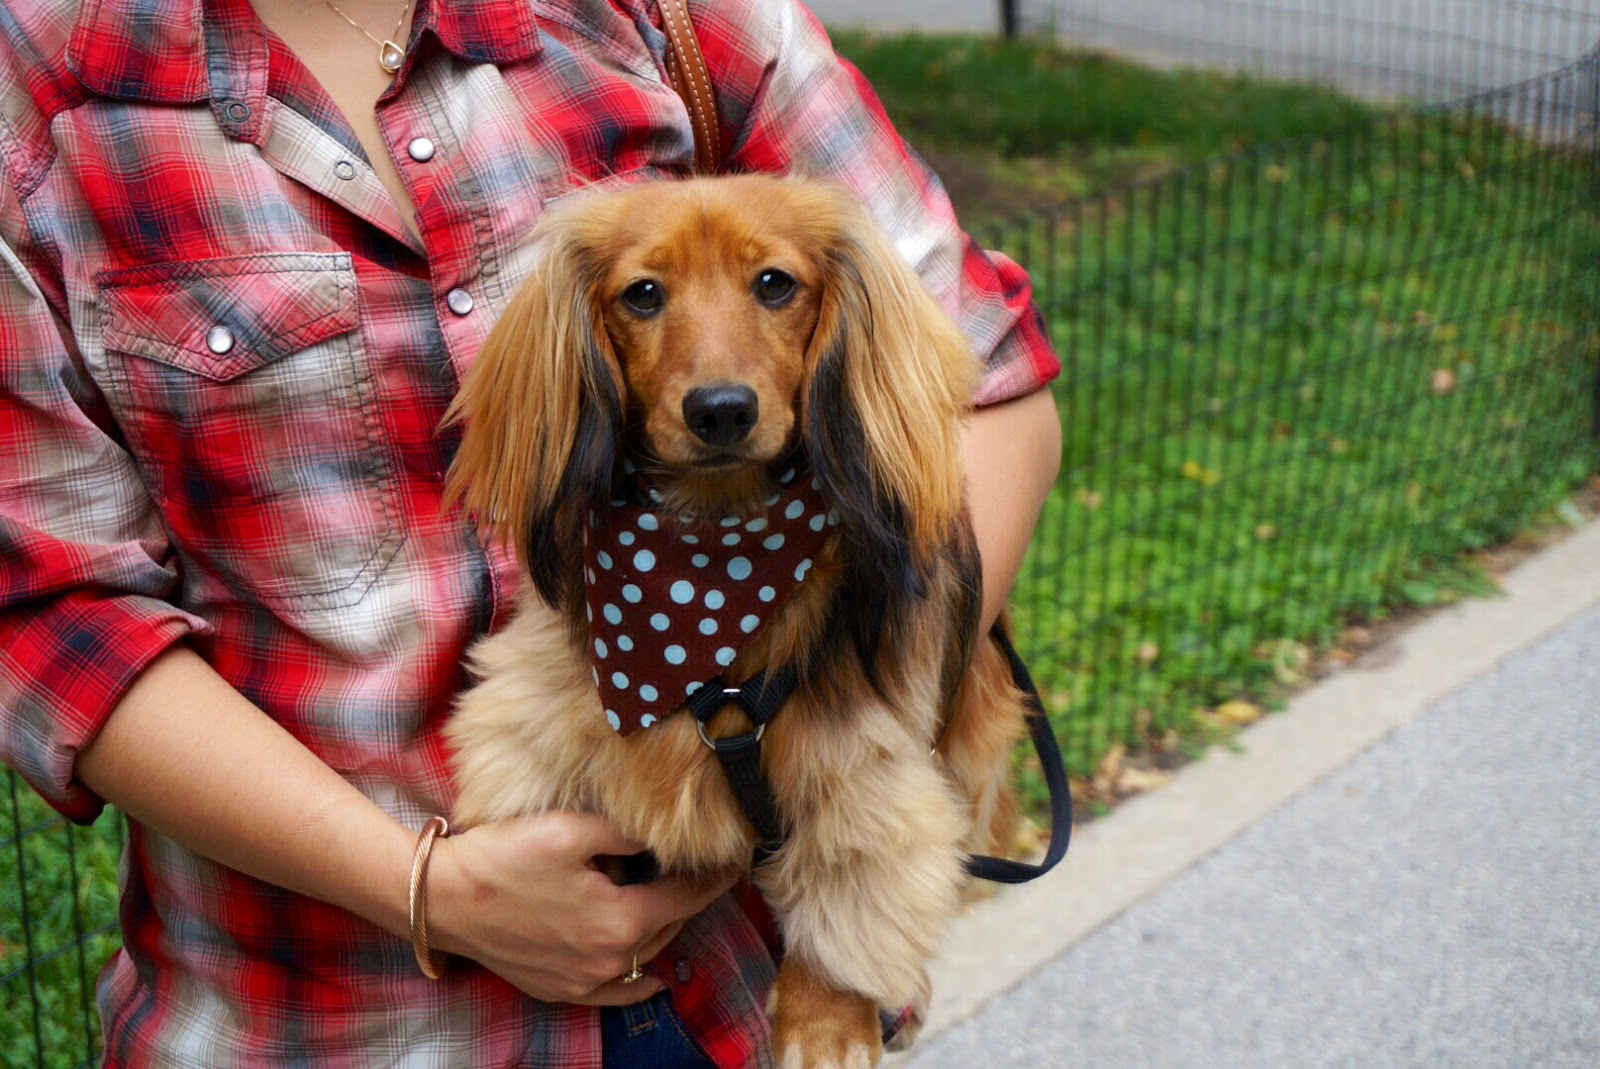 Les bananas how to groom a long hair dachshund unleashed spa how to groom a long hair dachshund unleashed spa self service dog wash nyc solutioingenieria Choice Image